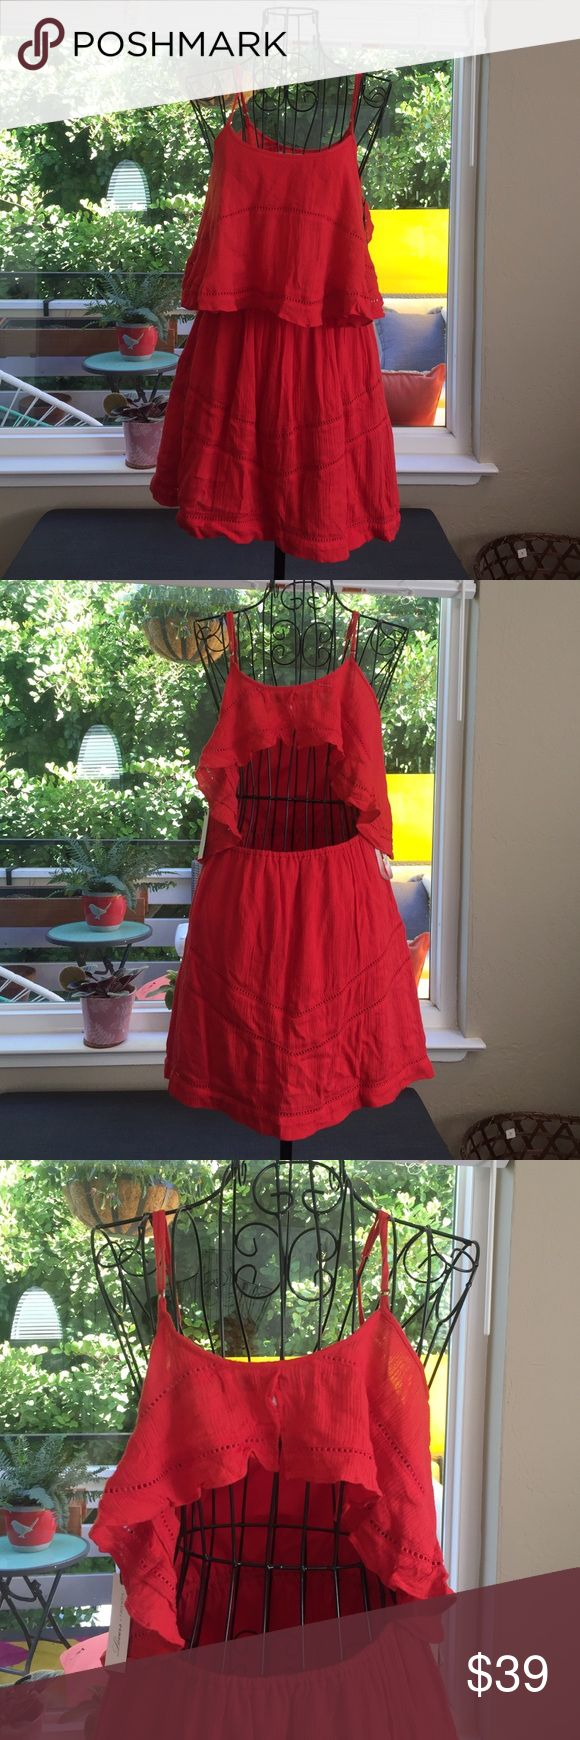 Lovers + Friends Flirty coral colored dress NWT Super cute, nice details.  Open back, adjustable straps, fully lined skirt.  100% Rayon.  Color is a coral - not red, not orange but somewhere in between. Lovers + Friends Dresses Mini